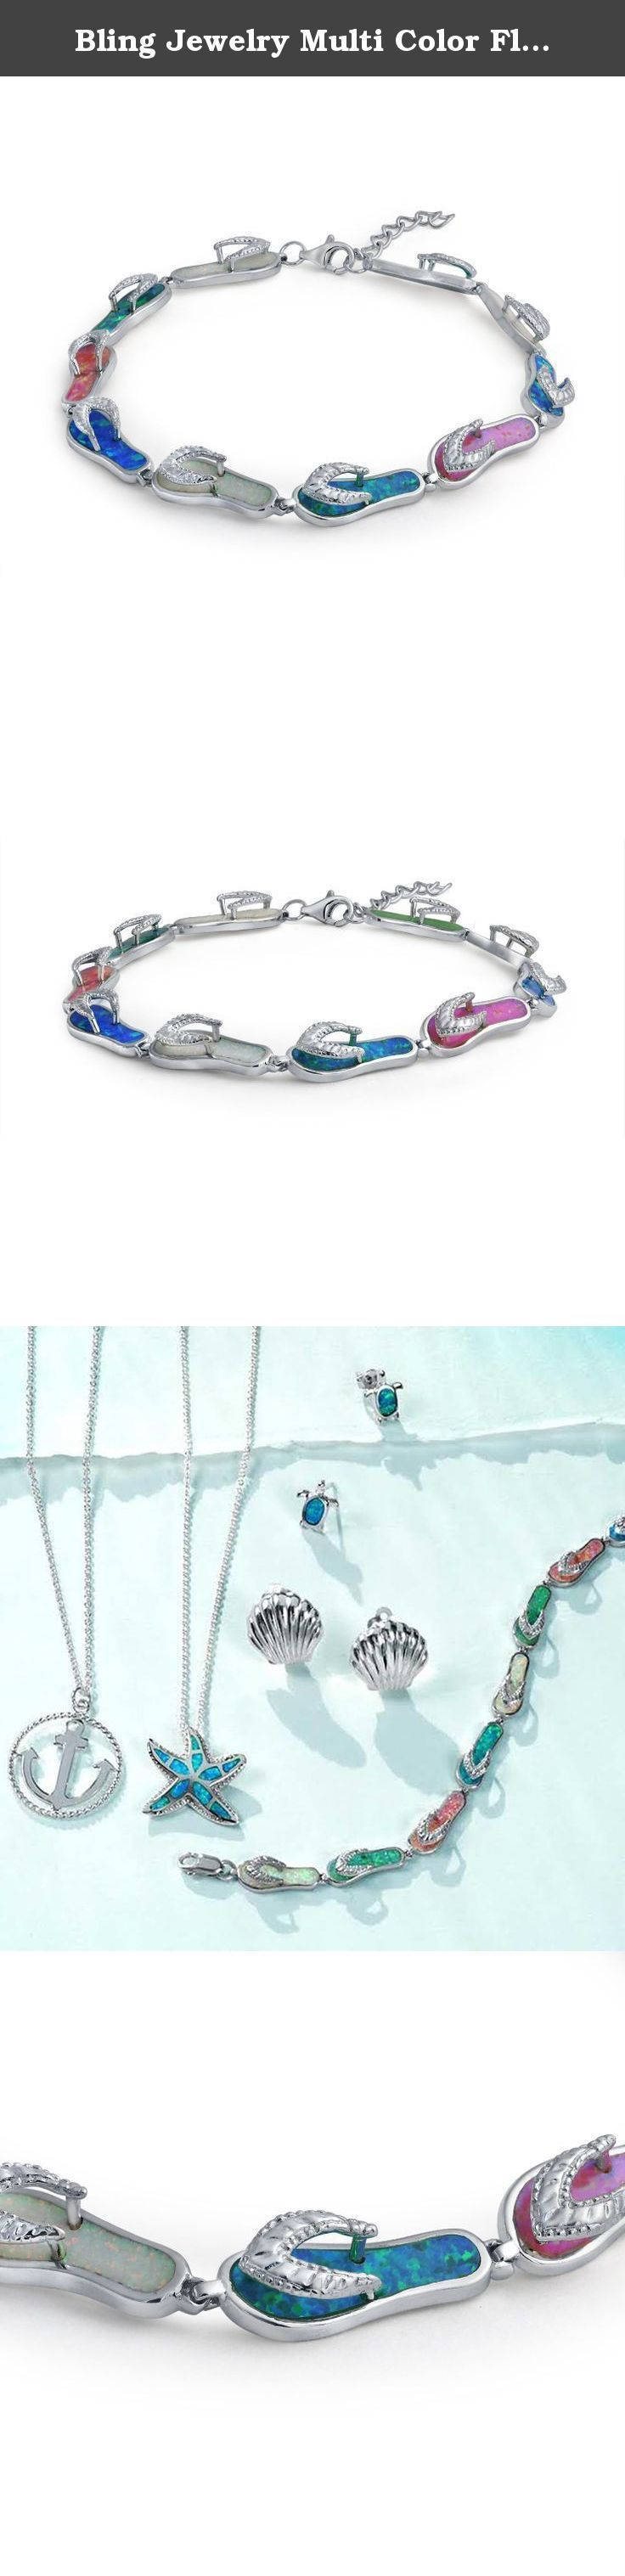 Bling Jewelry Multi Color Flip Flop Sandal Synthetic Opal Bracelet 925 Silver. Nothing epitomizes summer like a pair of flip flop sandals. Wear summer colors with this multi color Synthetic Opal bracelet and you will be transported back to your favorite time of year. Wear it on vacation or when you want to feel the memories of warm and playful weather. A mix of blue, green, white and pink Synthetic Opal inlay adorn a strand of nine sandals that sparkle on your wrist. The fun array of…